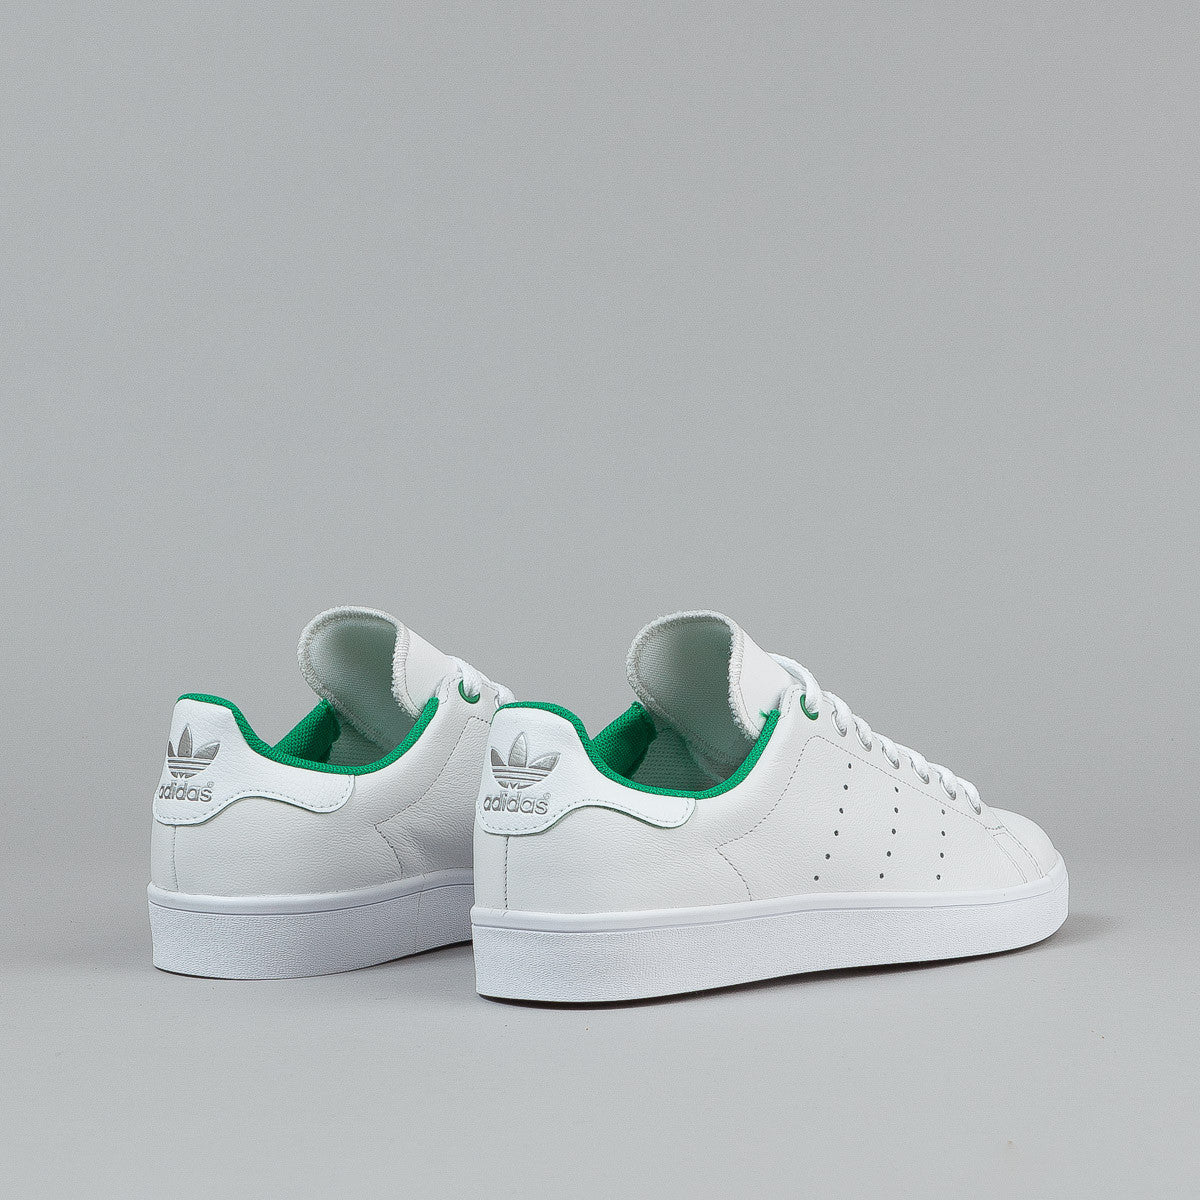 Adidas Stan Smith Vulc Shoes - Vintage White / Green / FTWR White